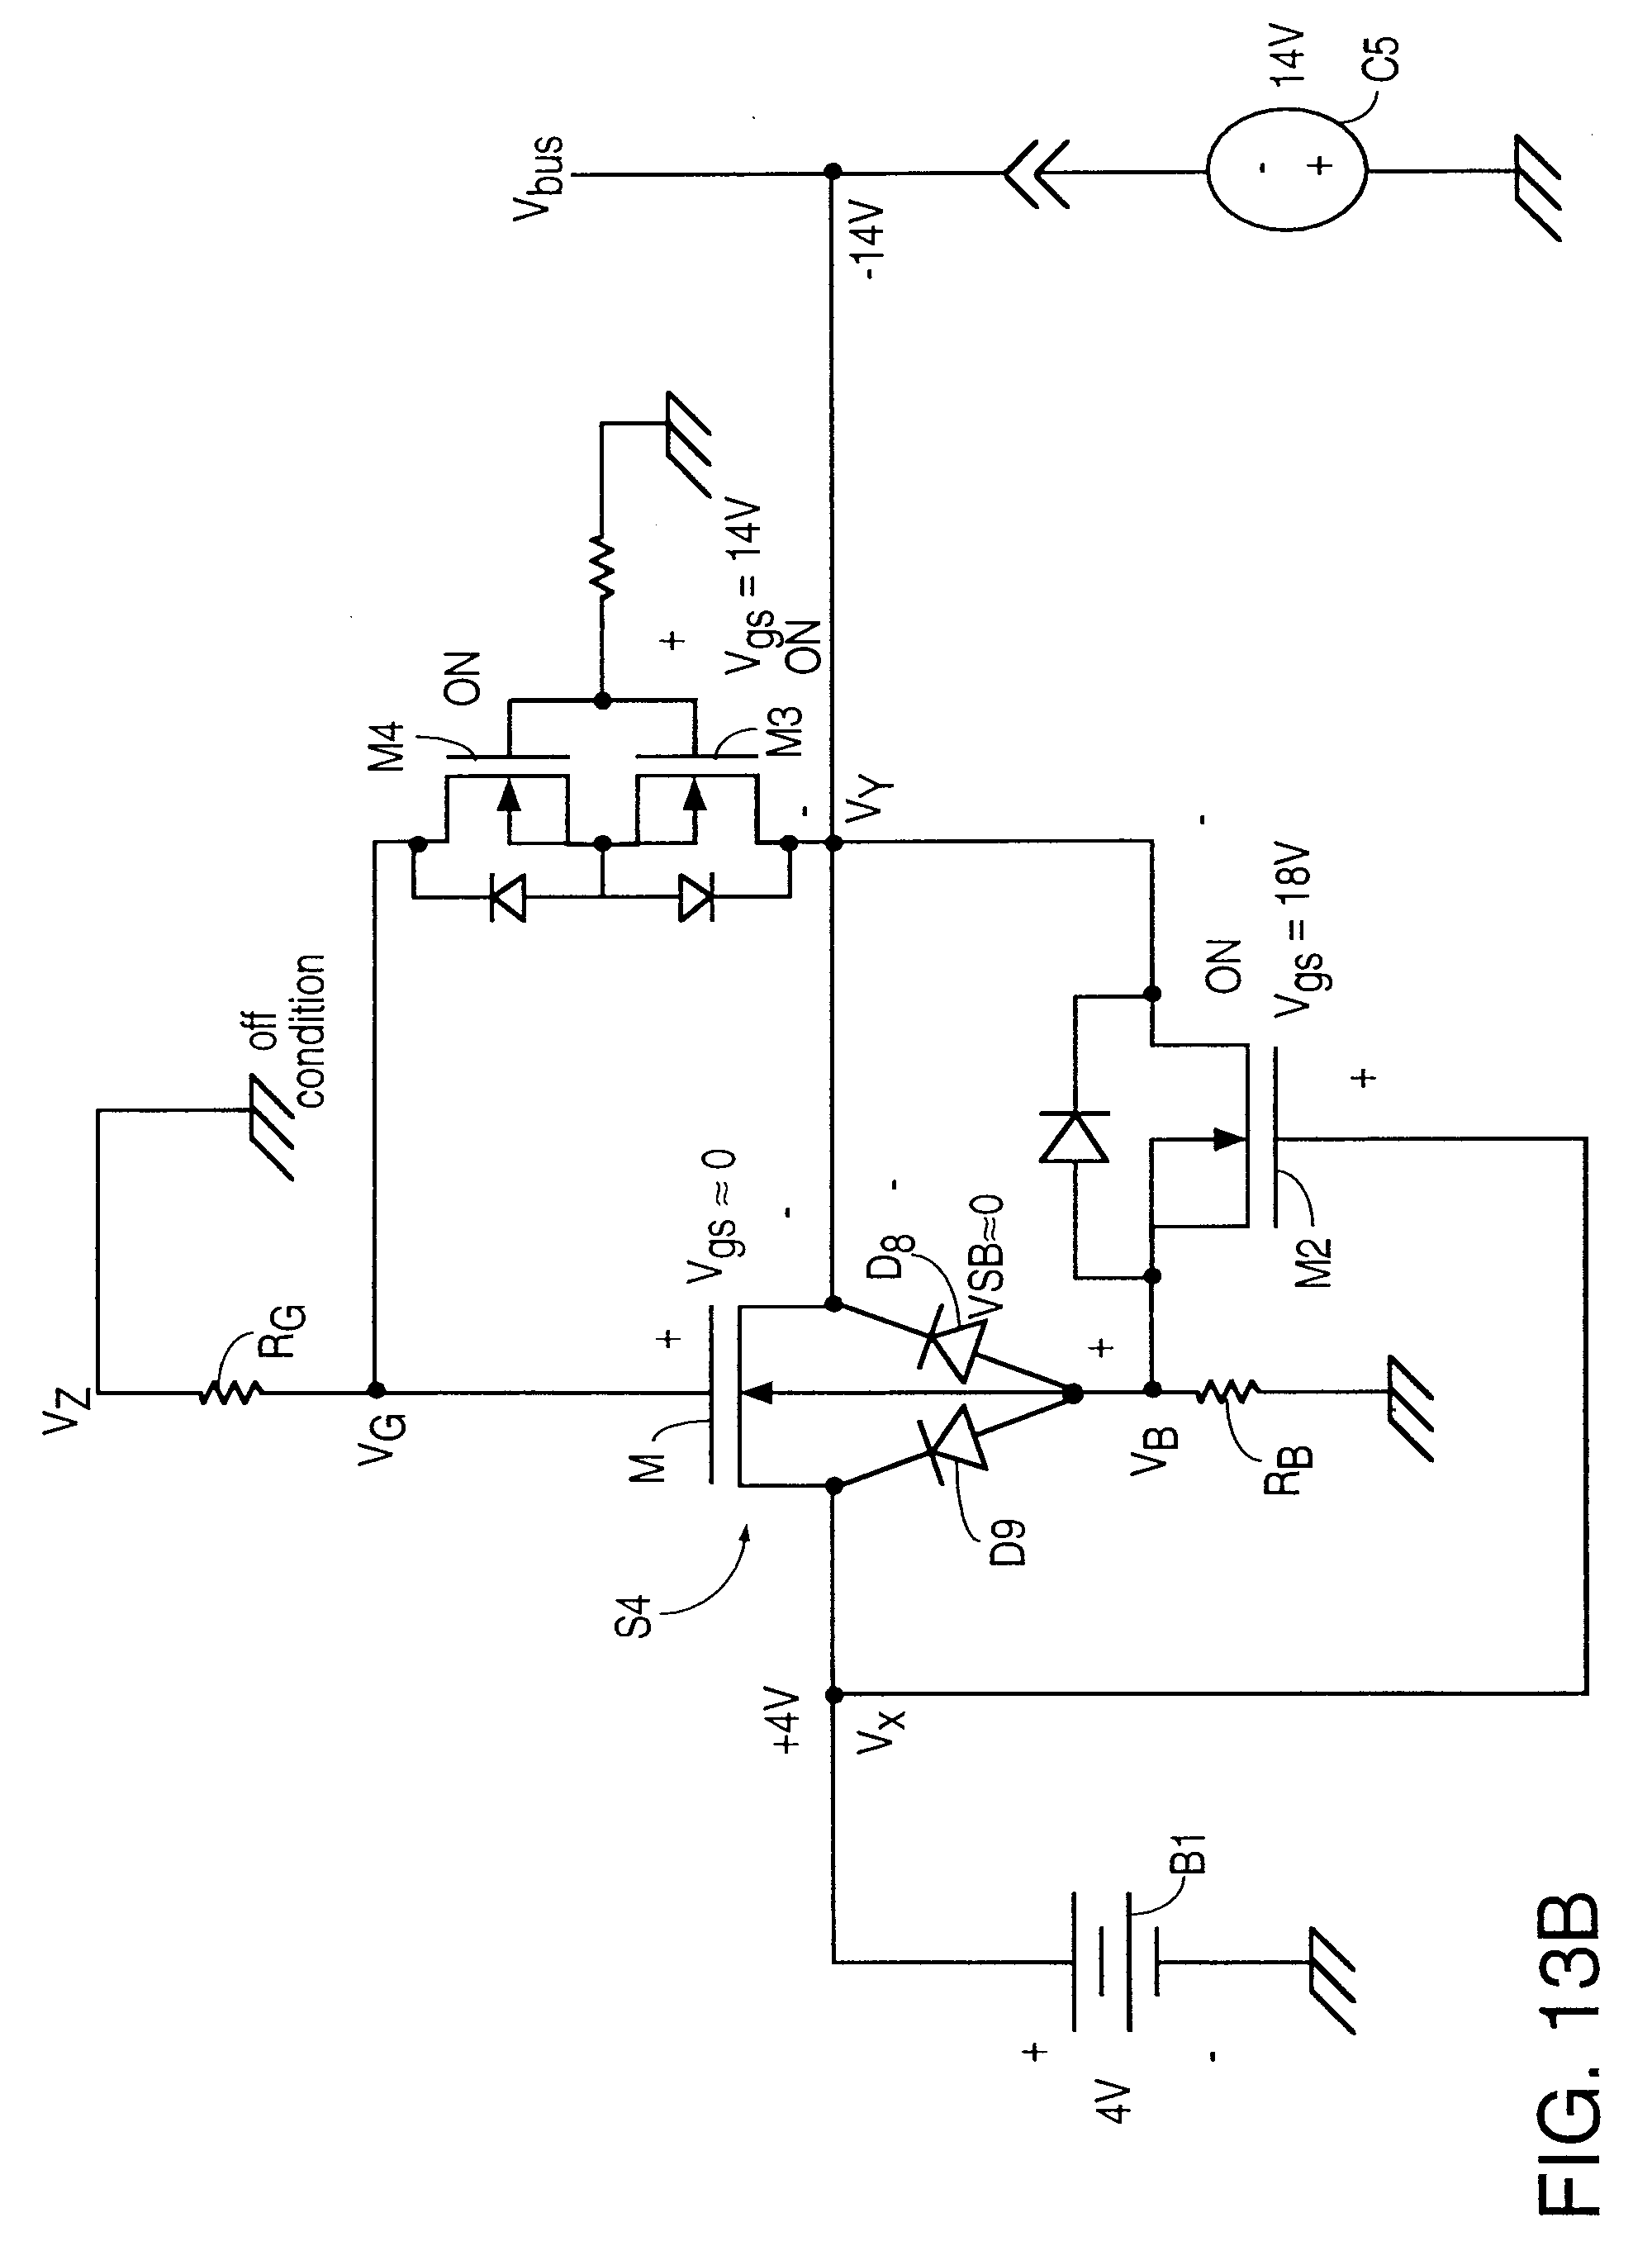 Patent Ep0660520a2 A Bidirectional Current Blocking Mosfet For Reverse Bias Diode Moreover Dc Power Supply Schematic Diagram Together Drawing